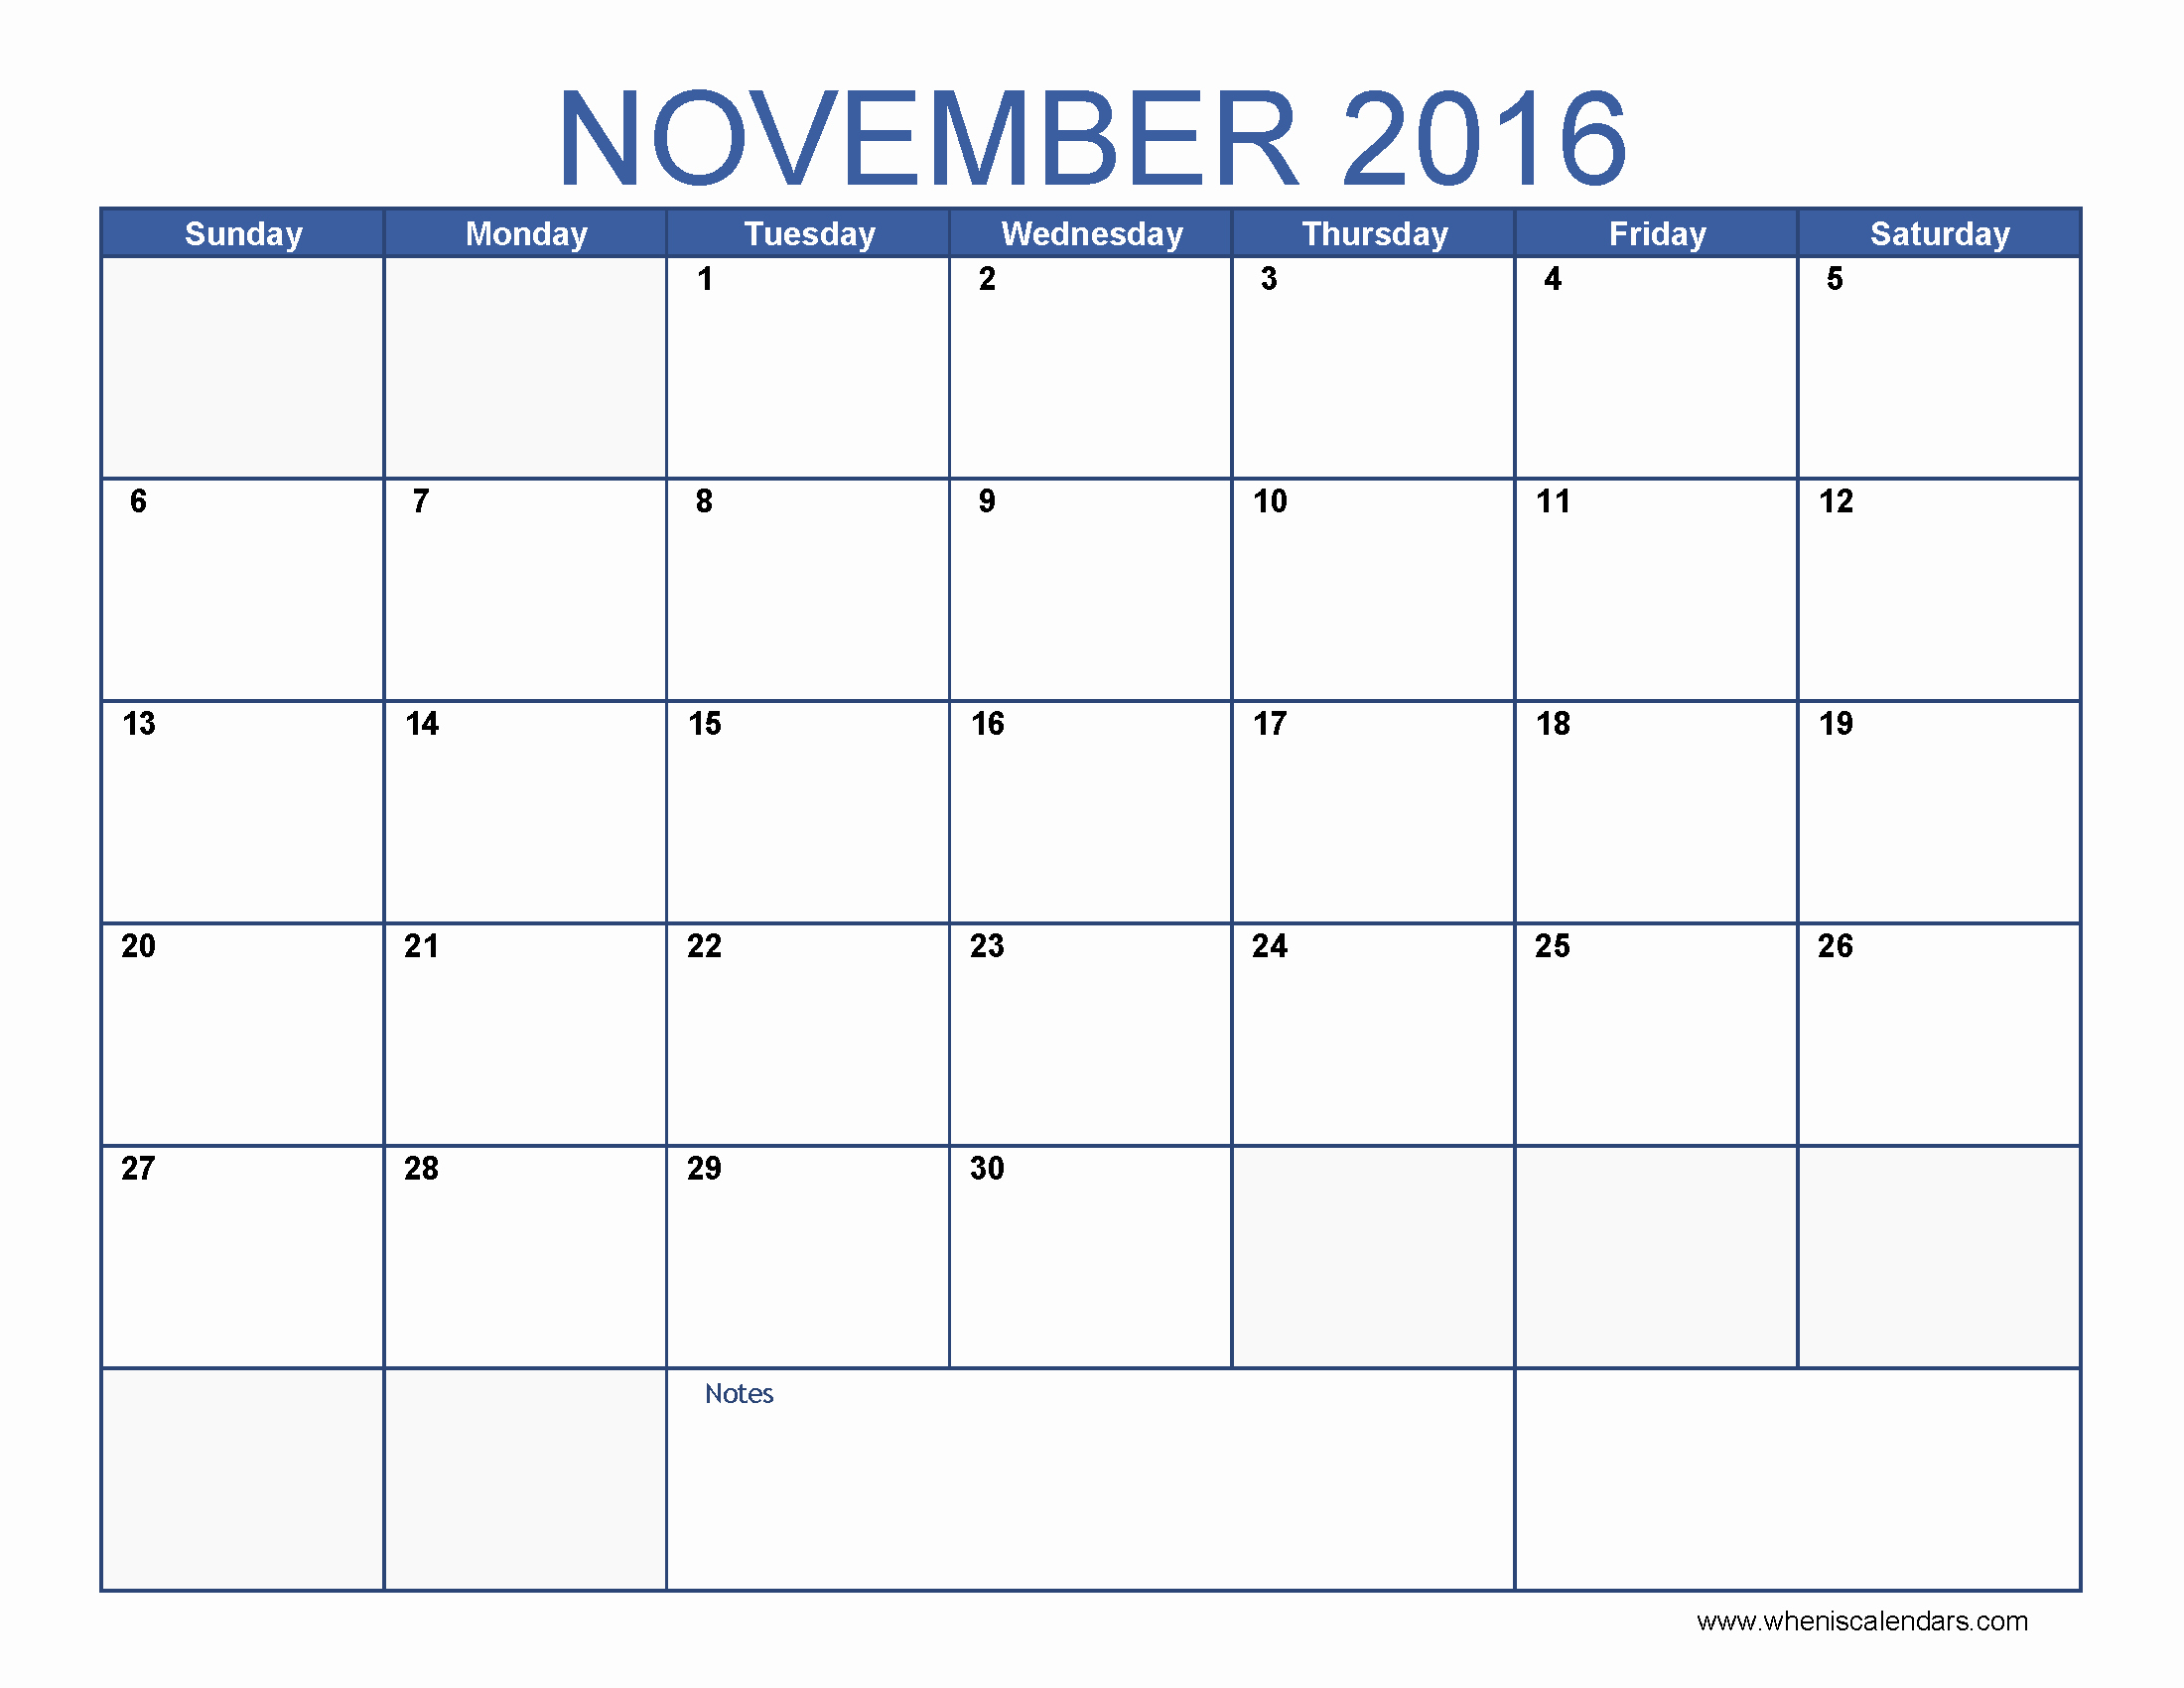 2016 Calendar Excel with Holidays Beautiful November 2016 Calendar Excel – Templates Free Printable